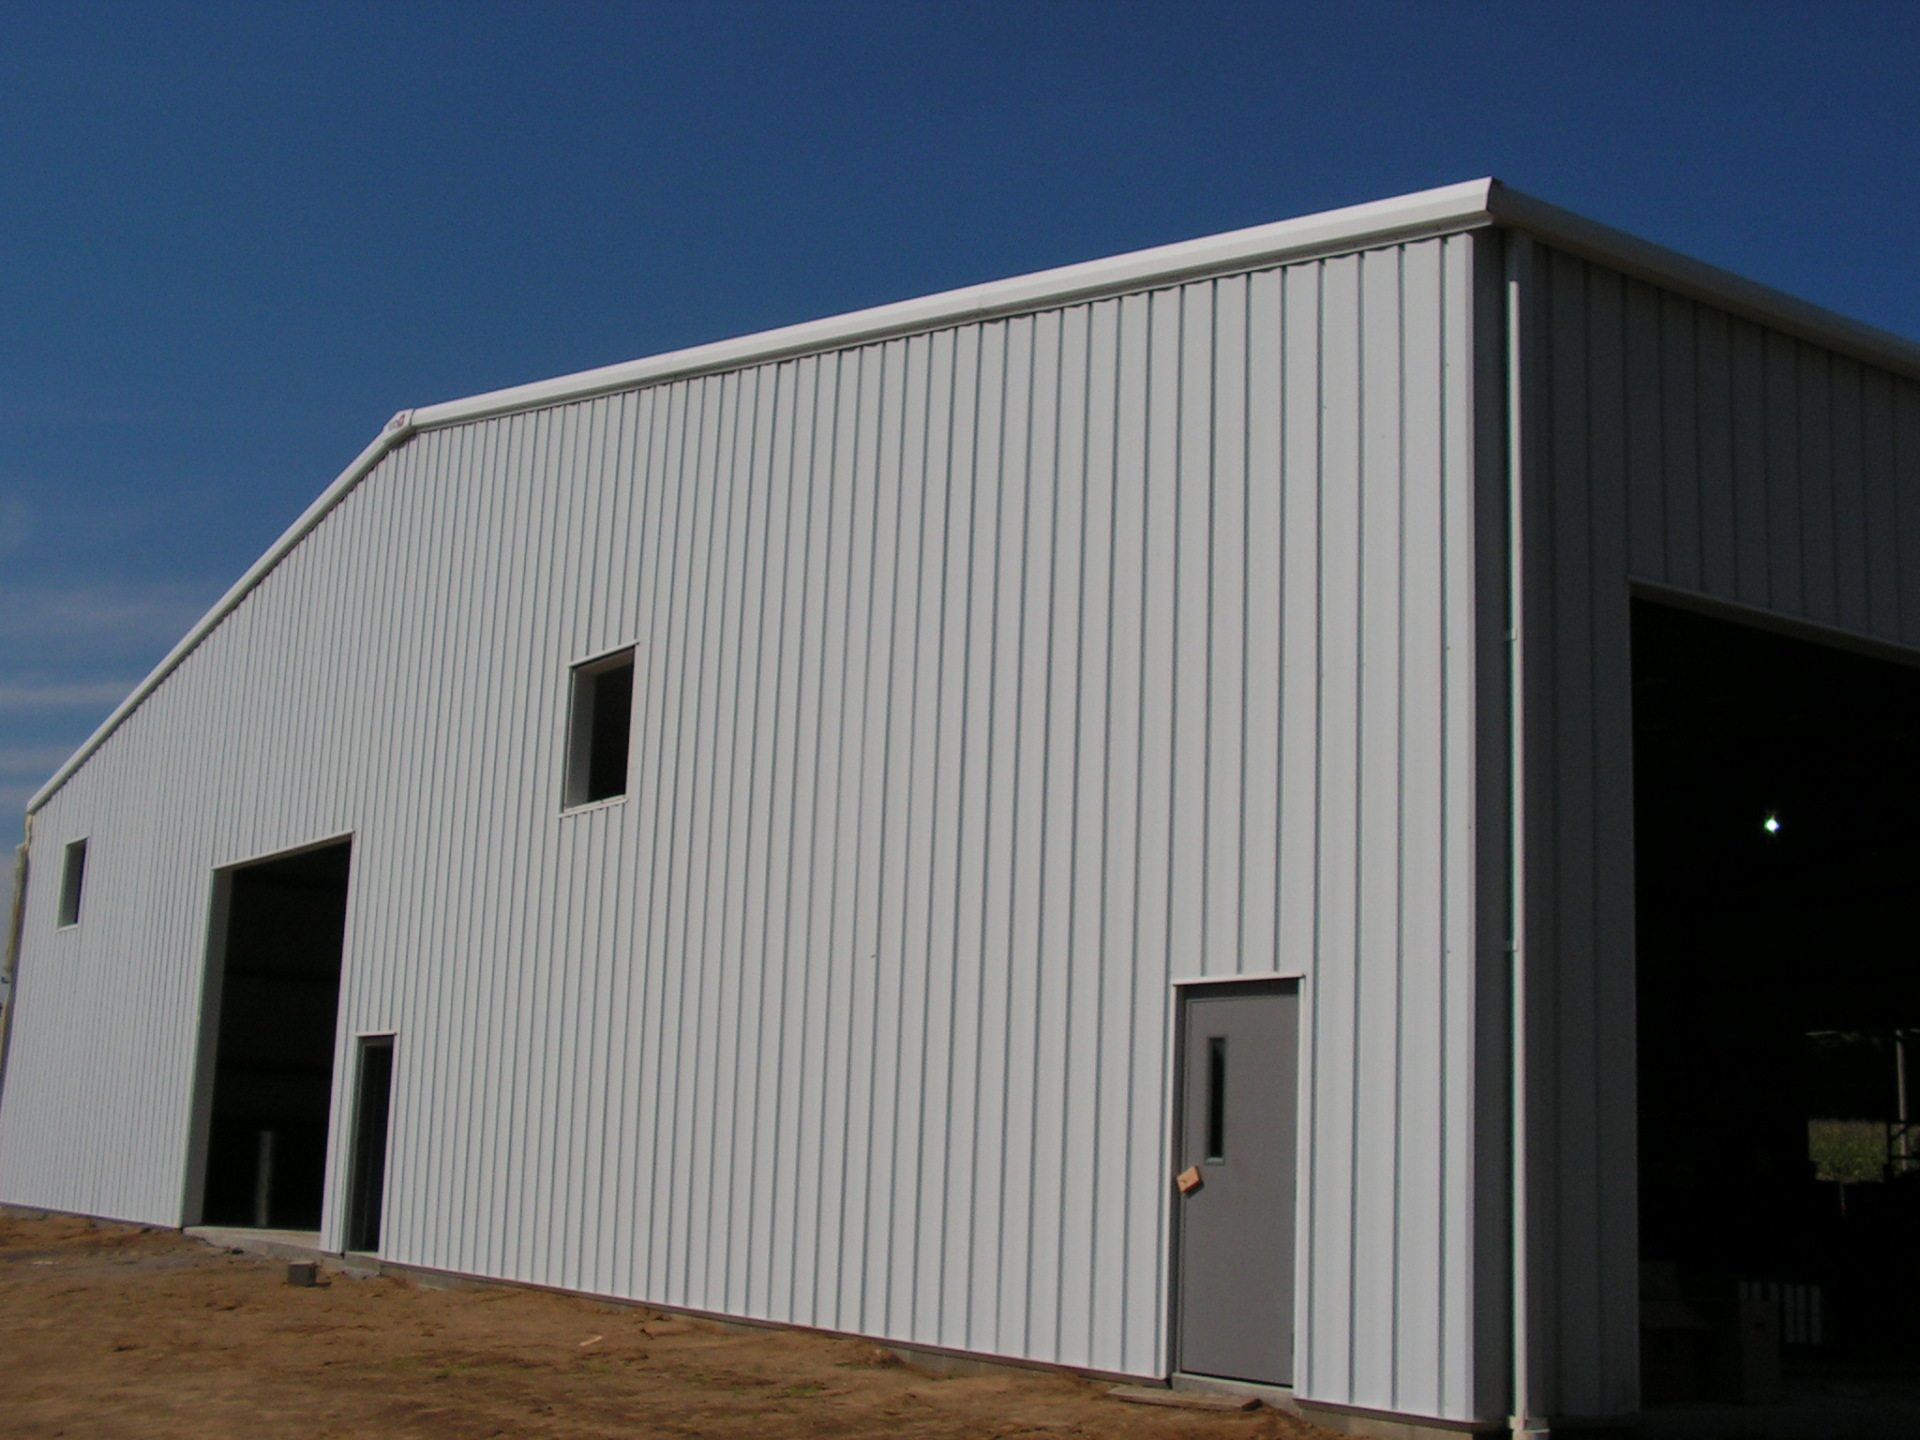 Ohio Steel Construction township maintenance building.  Garage building for truck maintenace with overhead doors walkdoor and windows.